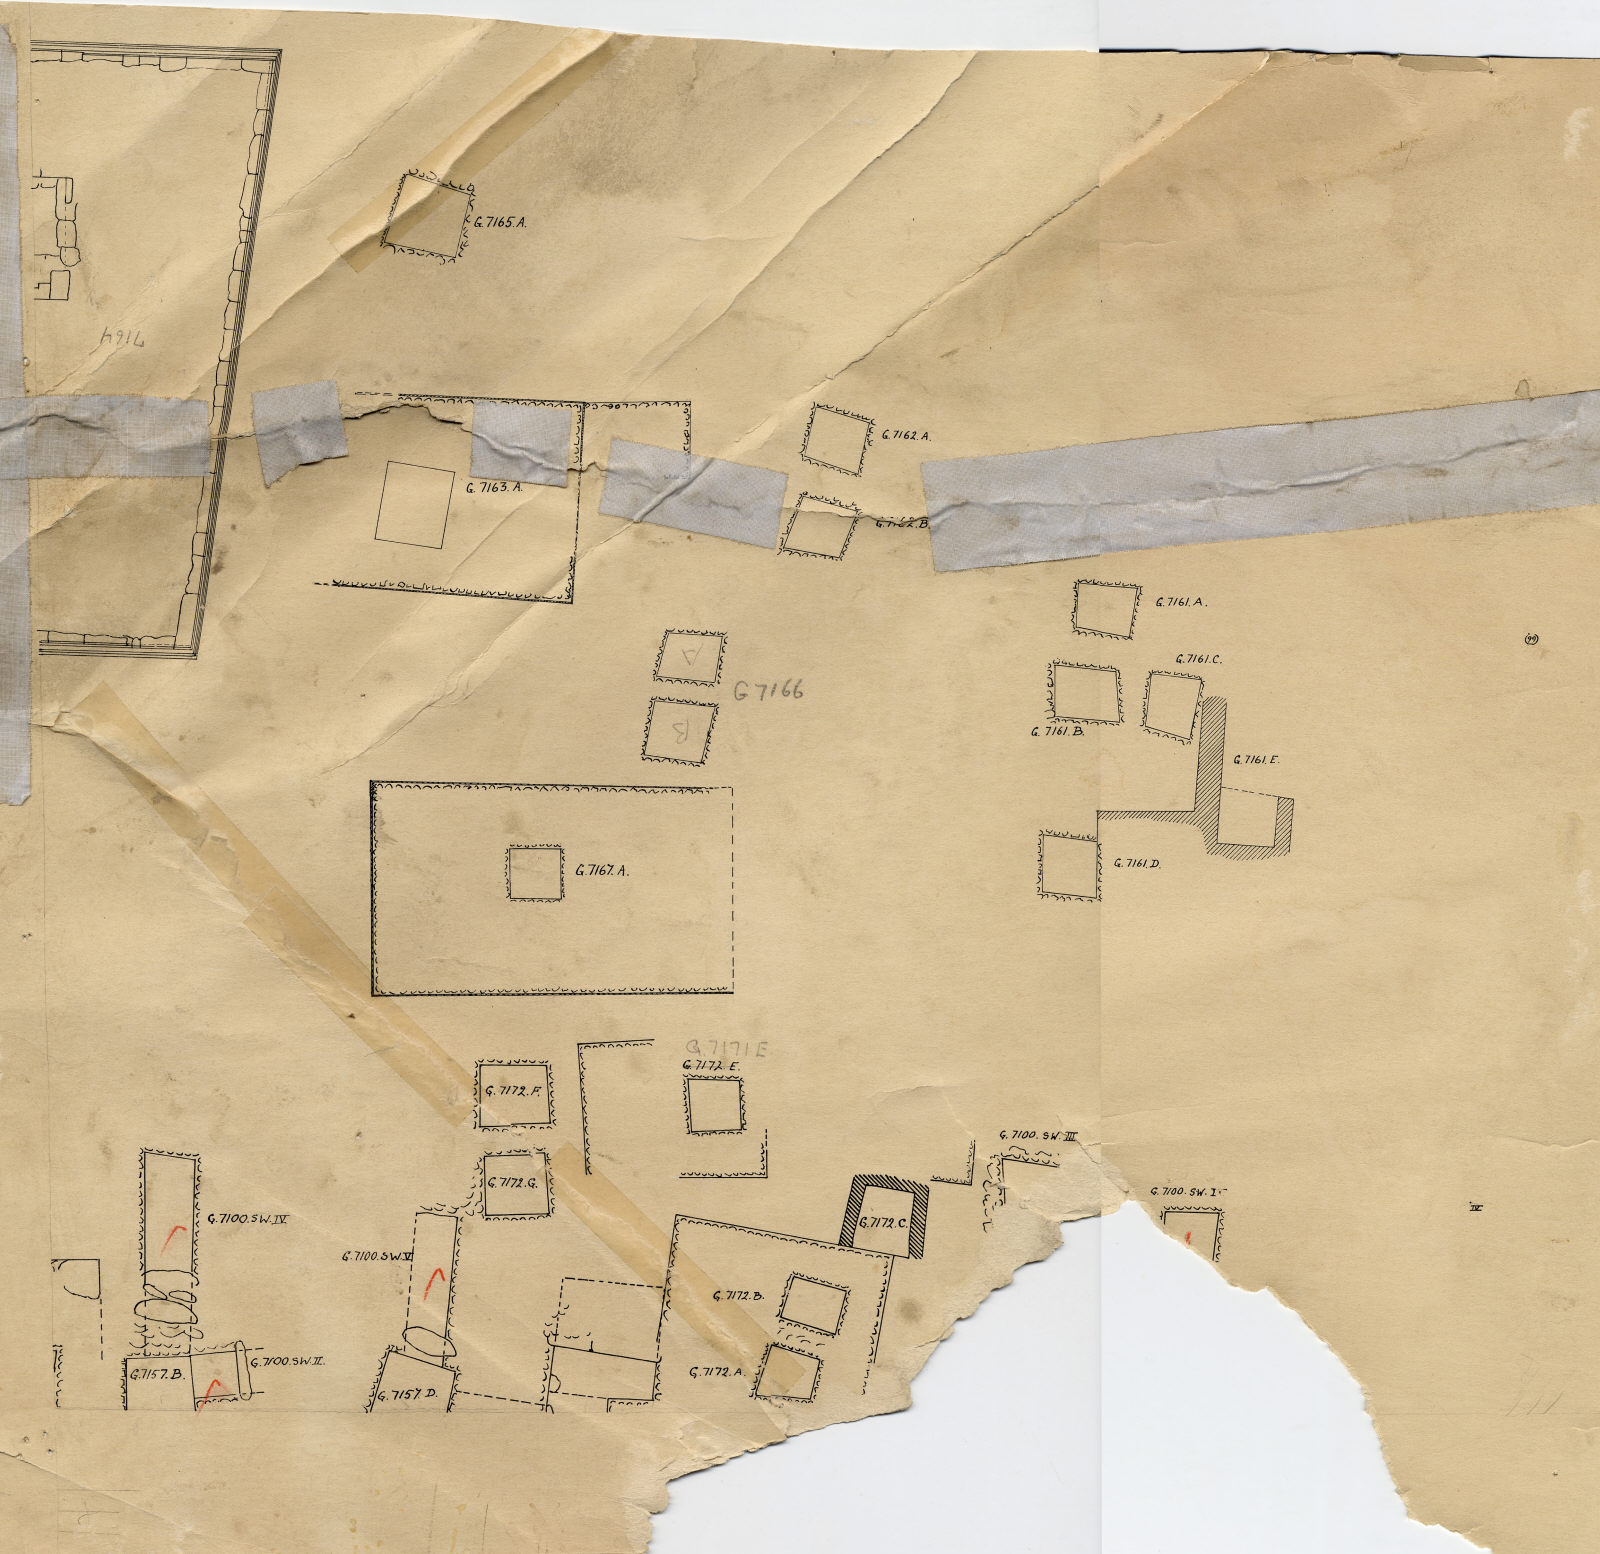 Maps and plans: Plan of Cemetery G 7000: G 7100 SW II,G 7100 SW III, G 7100 SW IV, G 7100 V, G 7100 SW IX, G 7157, G 7161, G 7162, G 7163, G 7164, G 7165, G 7166, G 7167, G 7171, G 7172